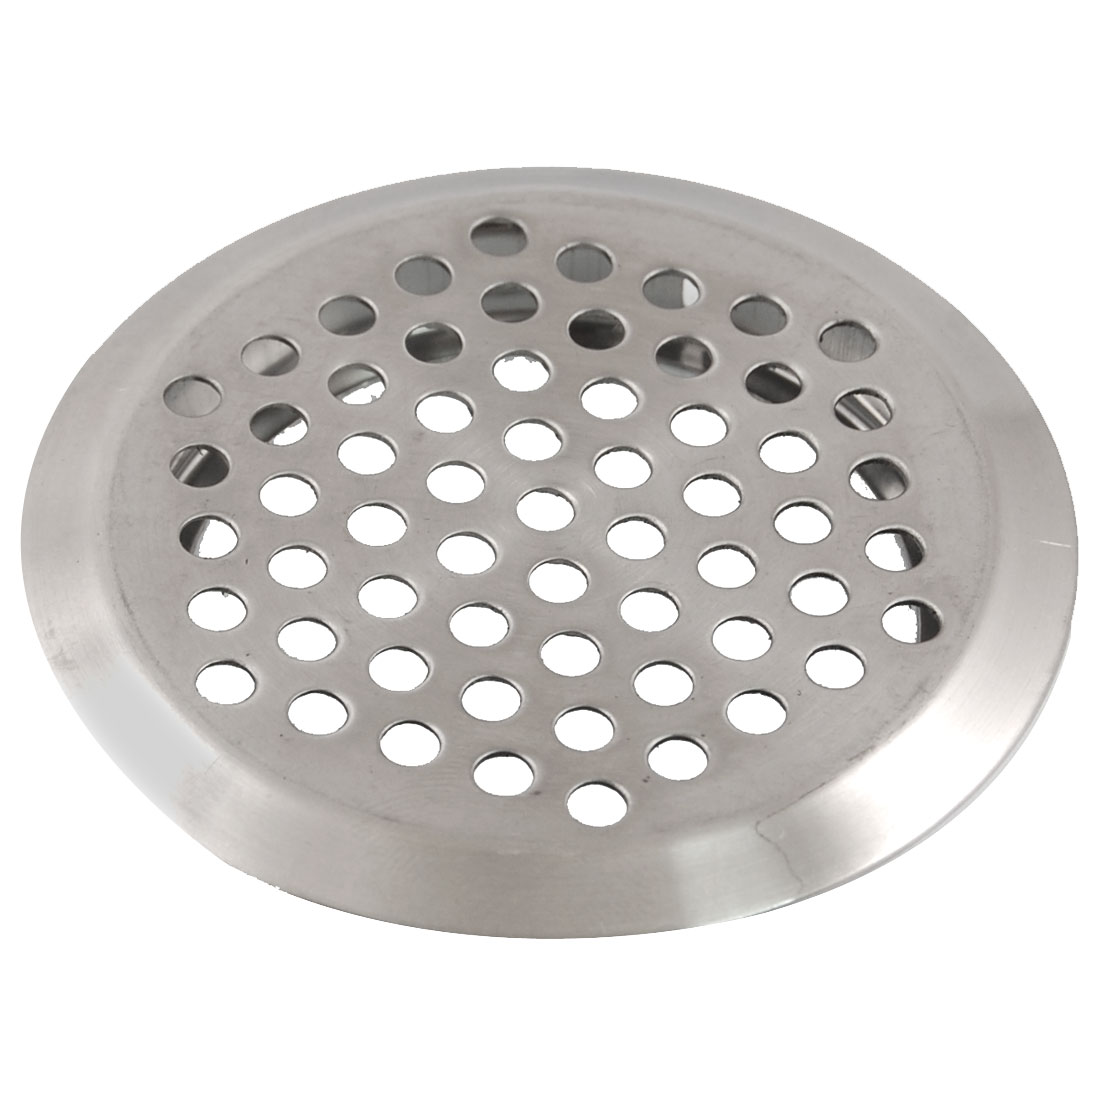 Kitchen 65mm Dia Stainless Steel Perforated Round Air Vent Louver